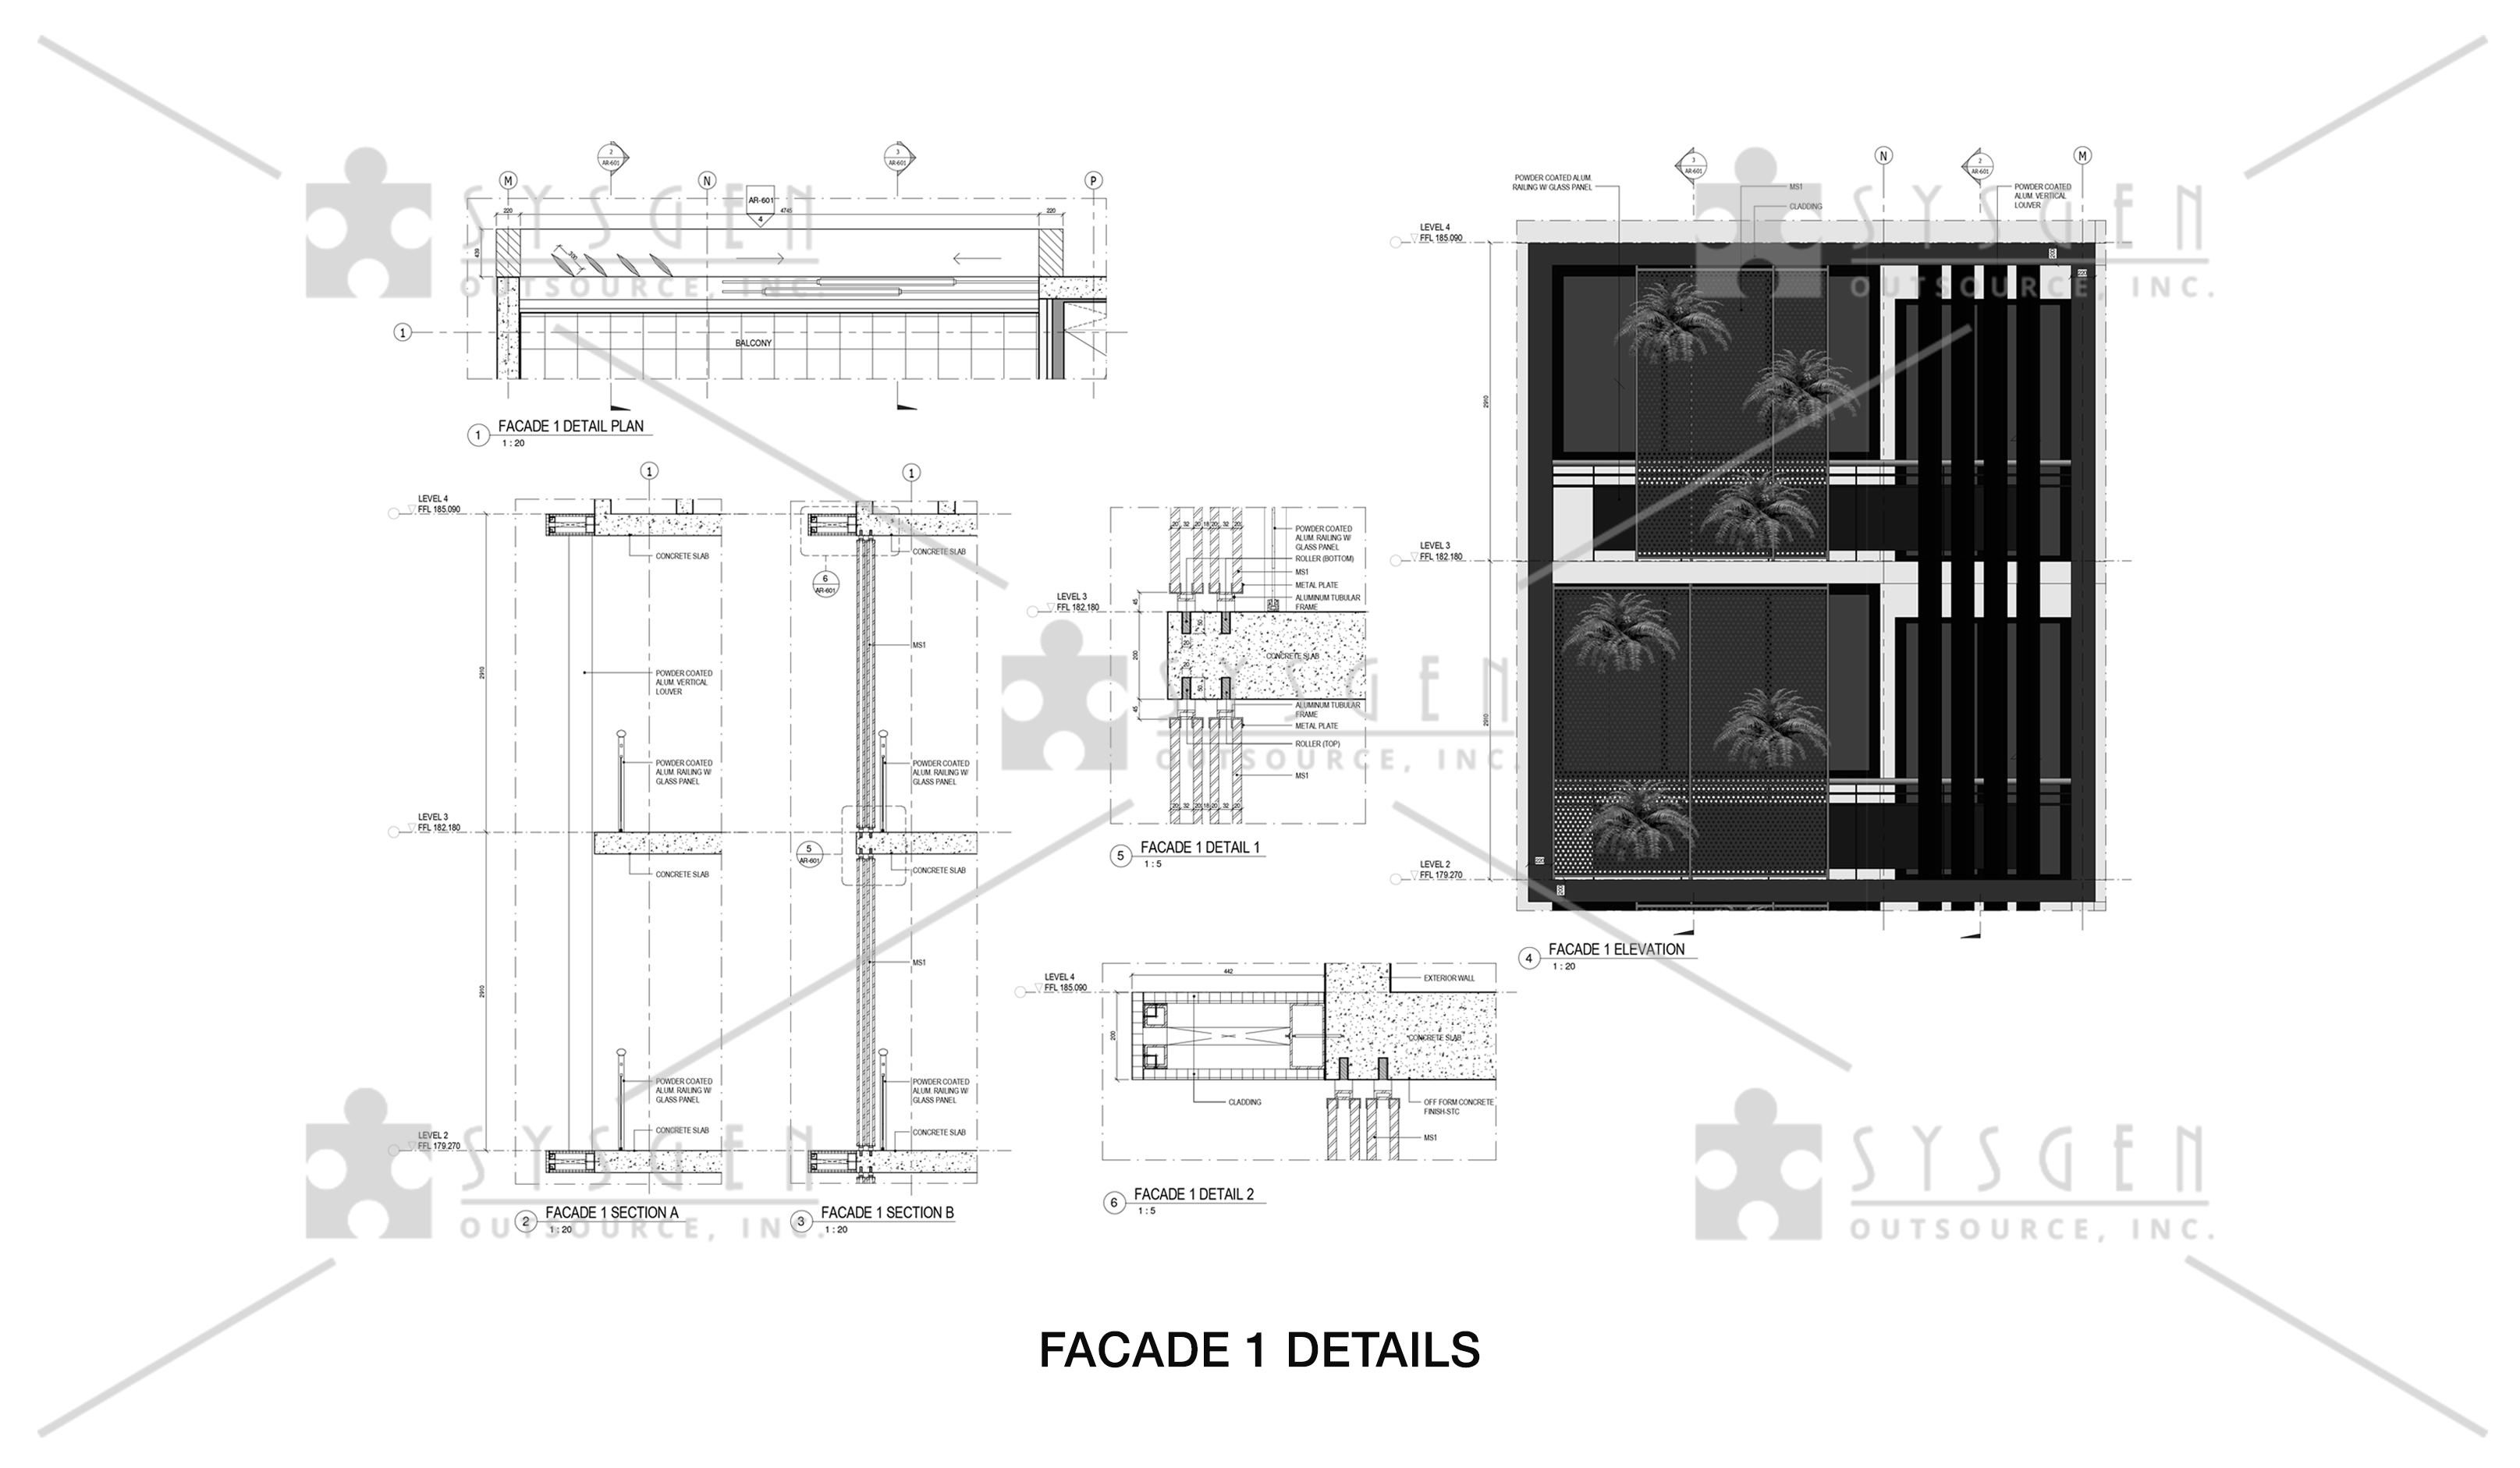 sysgen-outsource-cad-outsourcing-services-cad-conversion-revit-4-storey-residential19